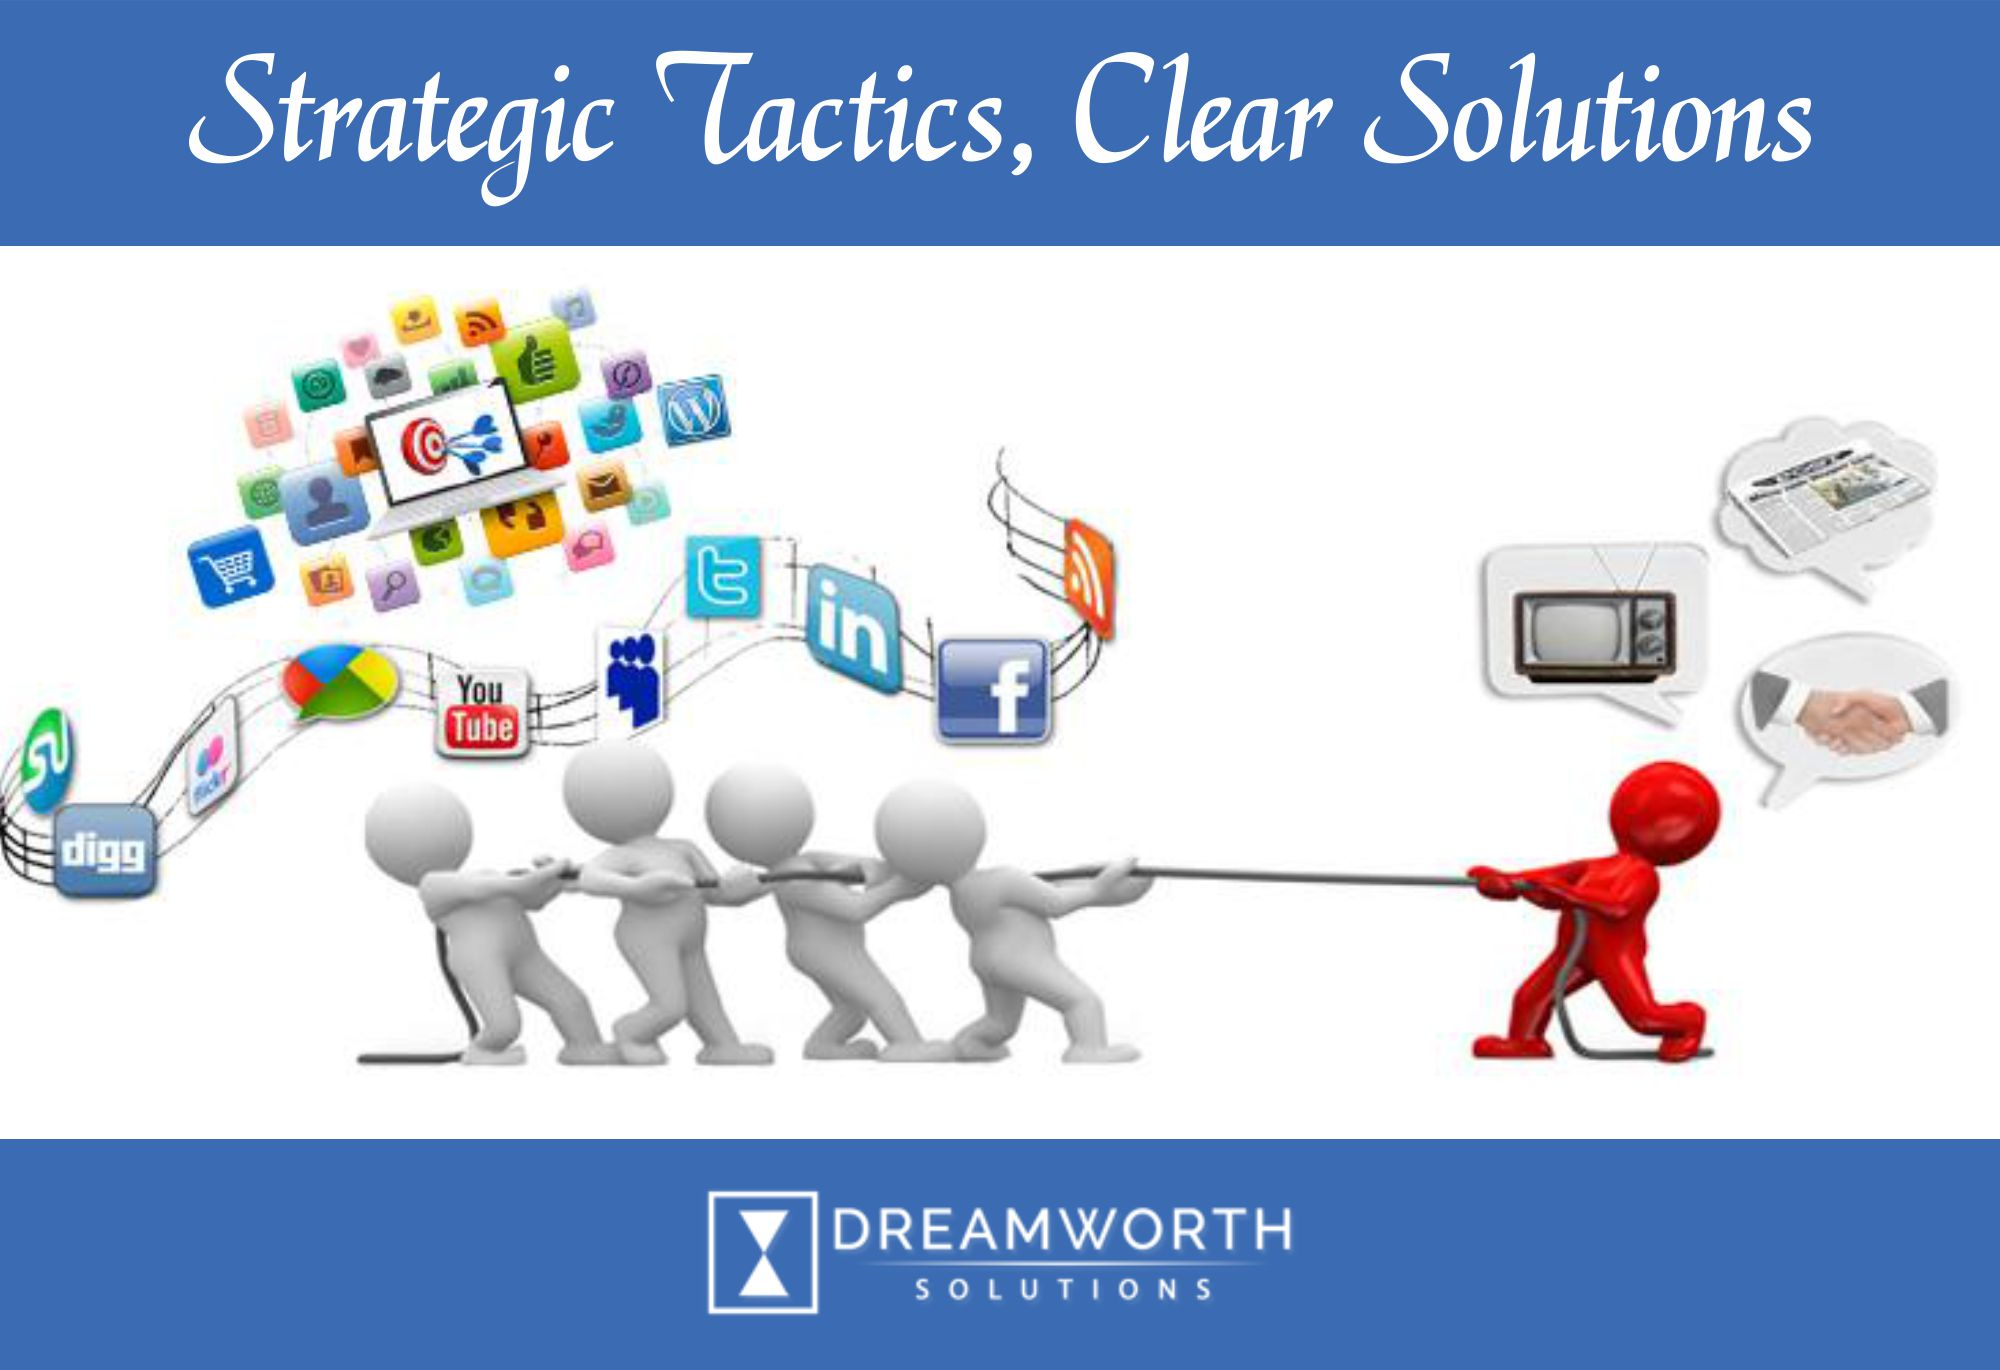 Dreamworth solutions provides best digital marketing services